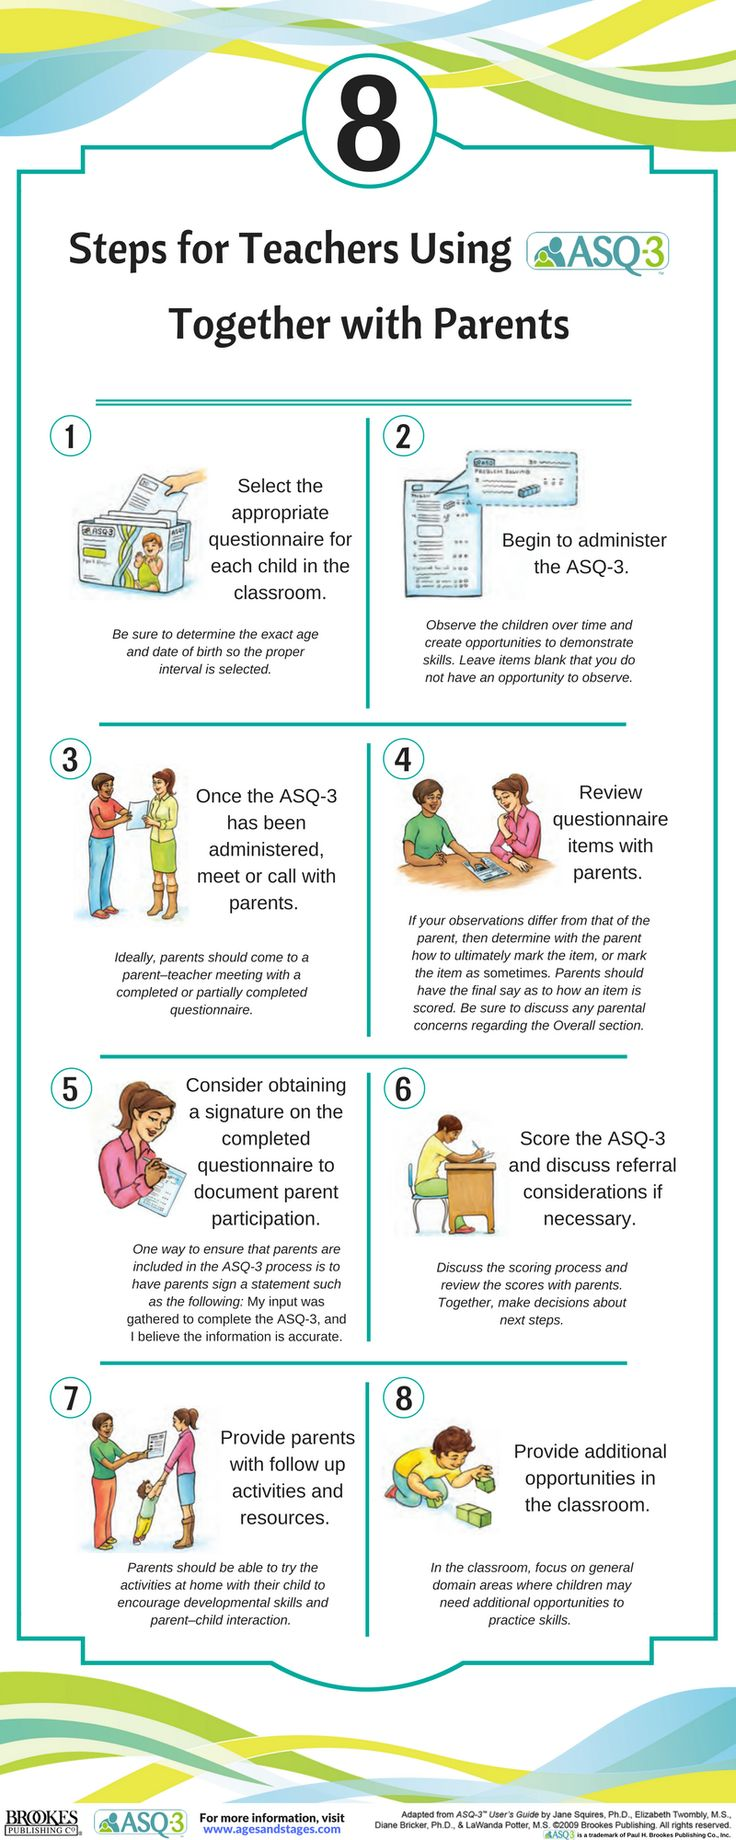 How Can Teachers And Child Care Providers Work With Parents To Administer ASQ 3